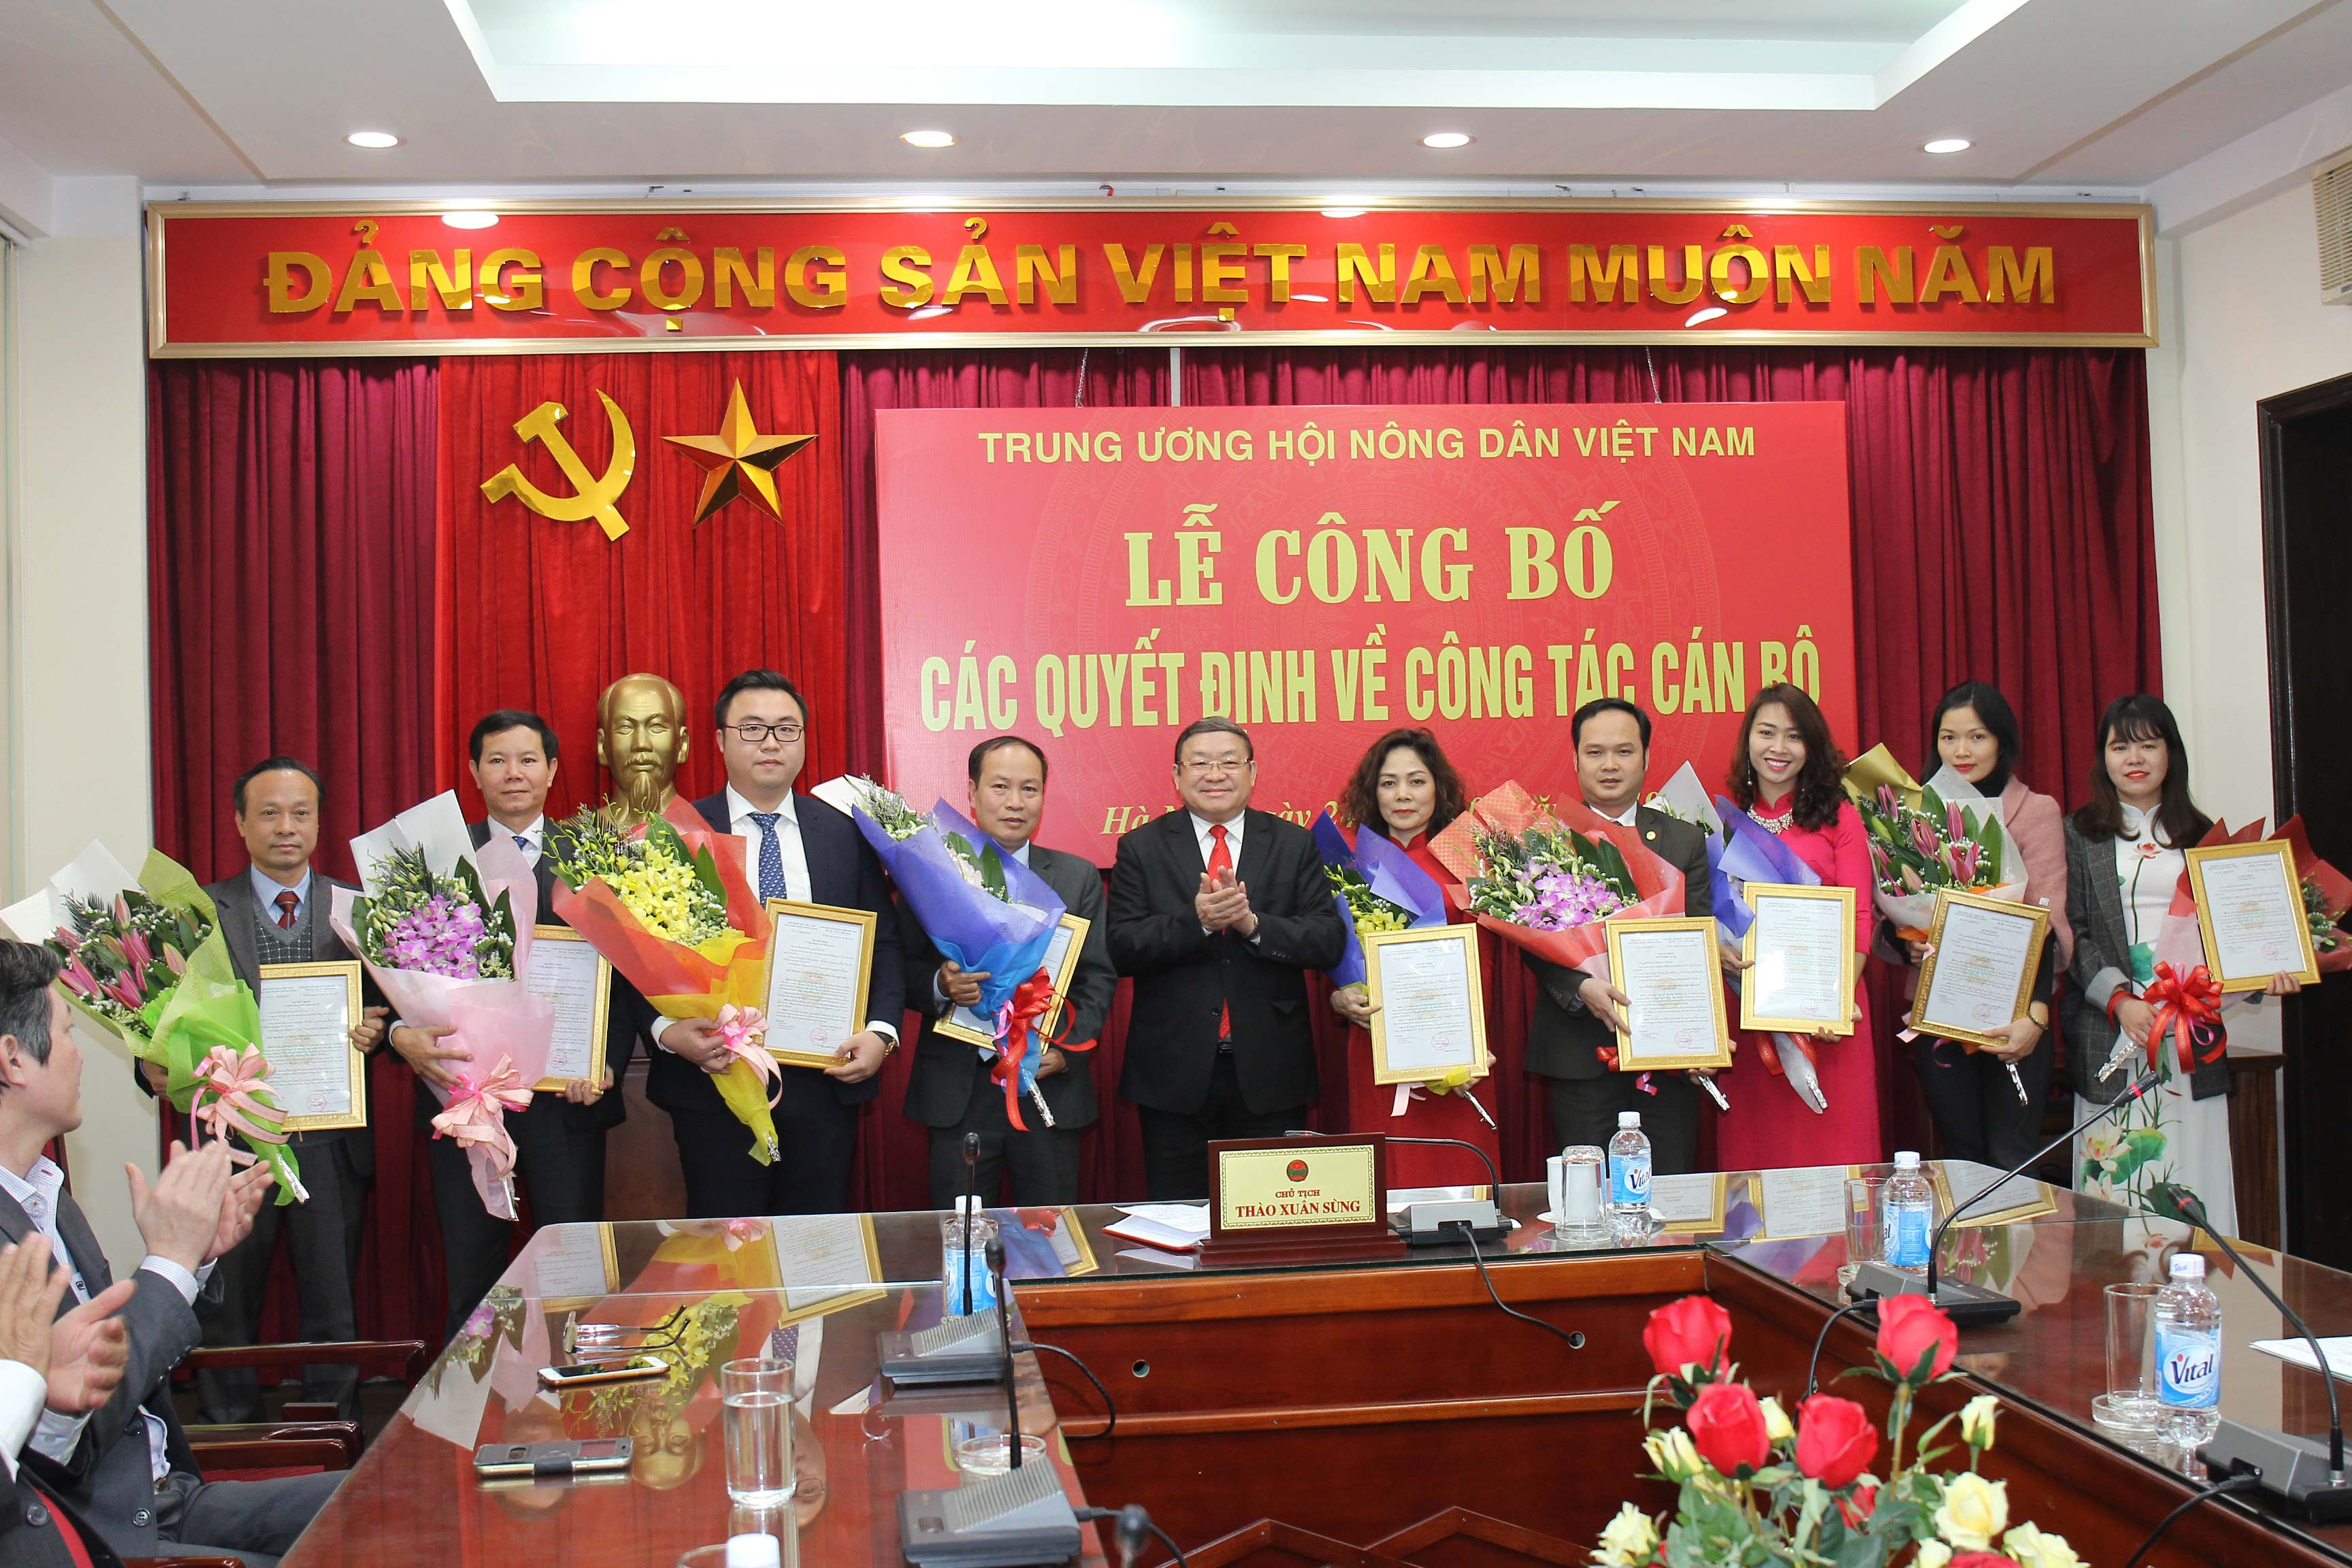 trung uong hoi ndvn: cong bo cac quyet dinh ve cong tac can bo hinh anh 2